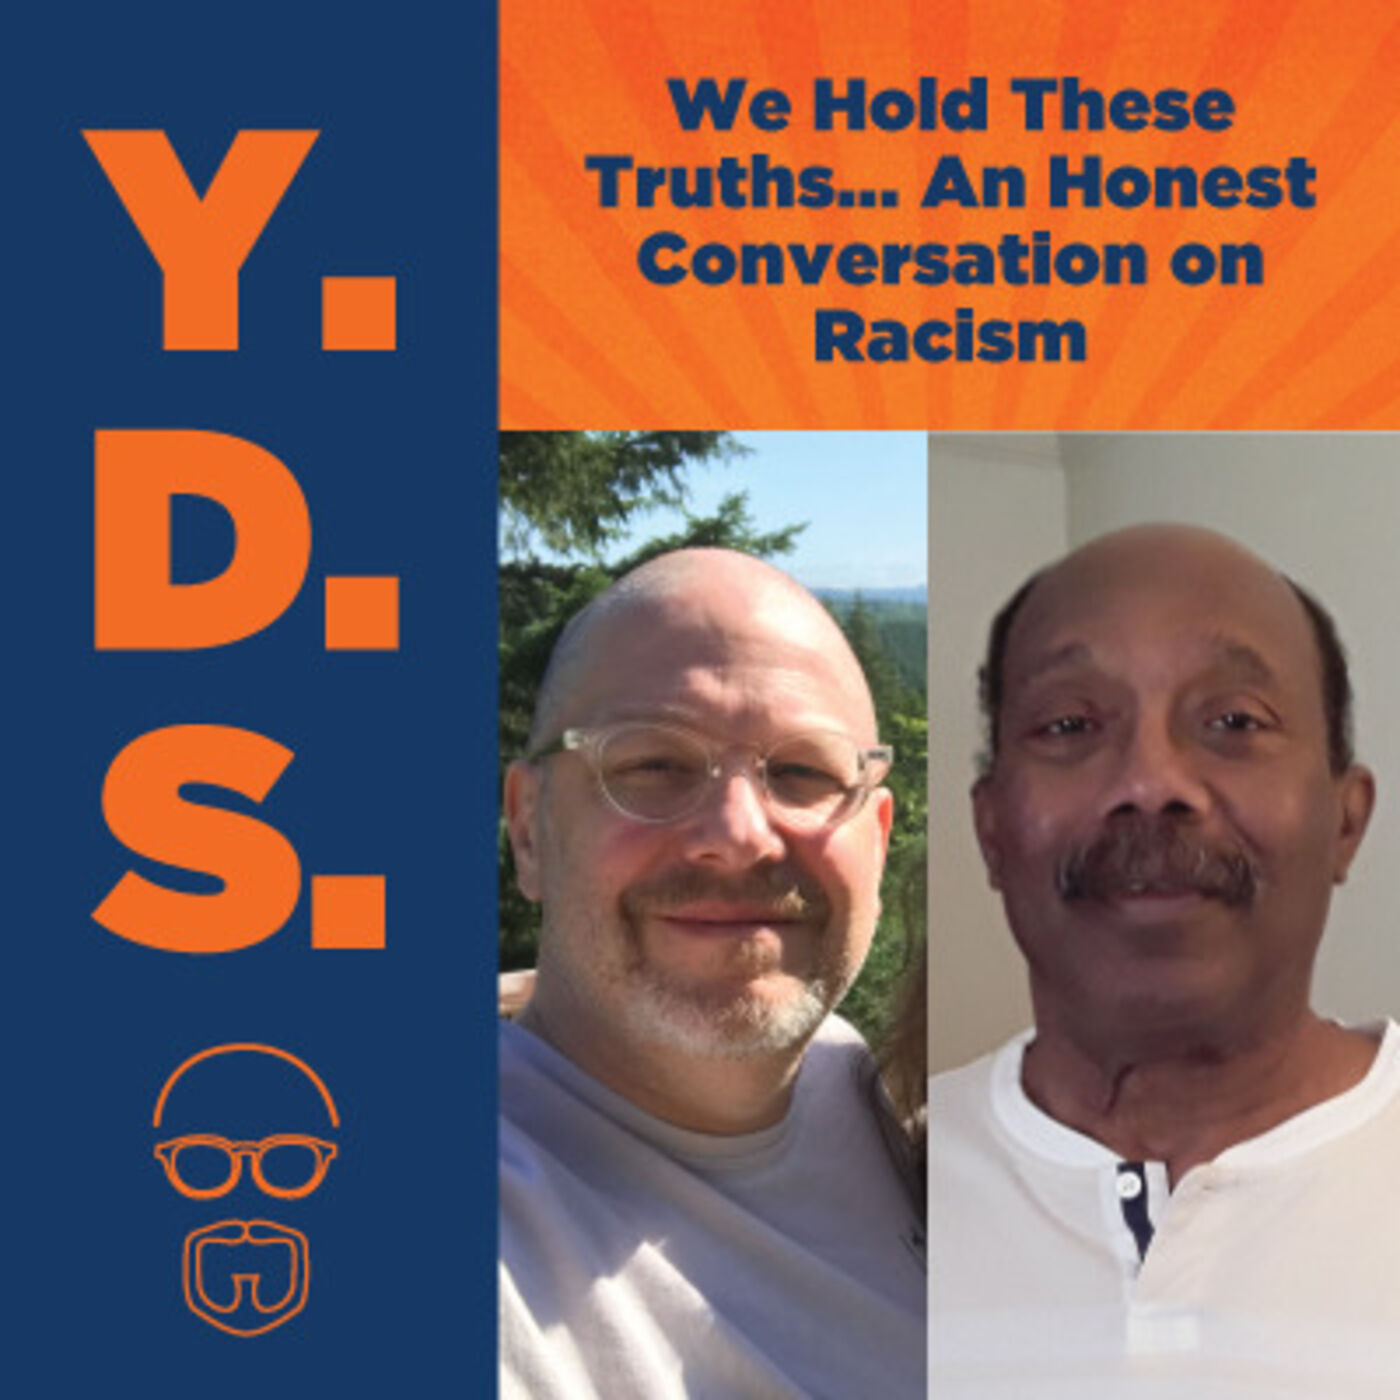 Ep. 12 - We Hold These Truths… An Honest Conversation on Racism